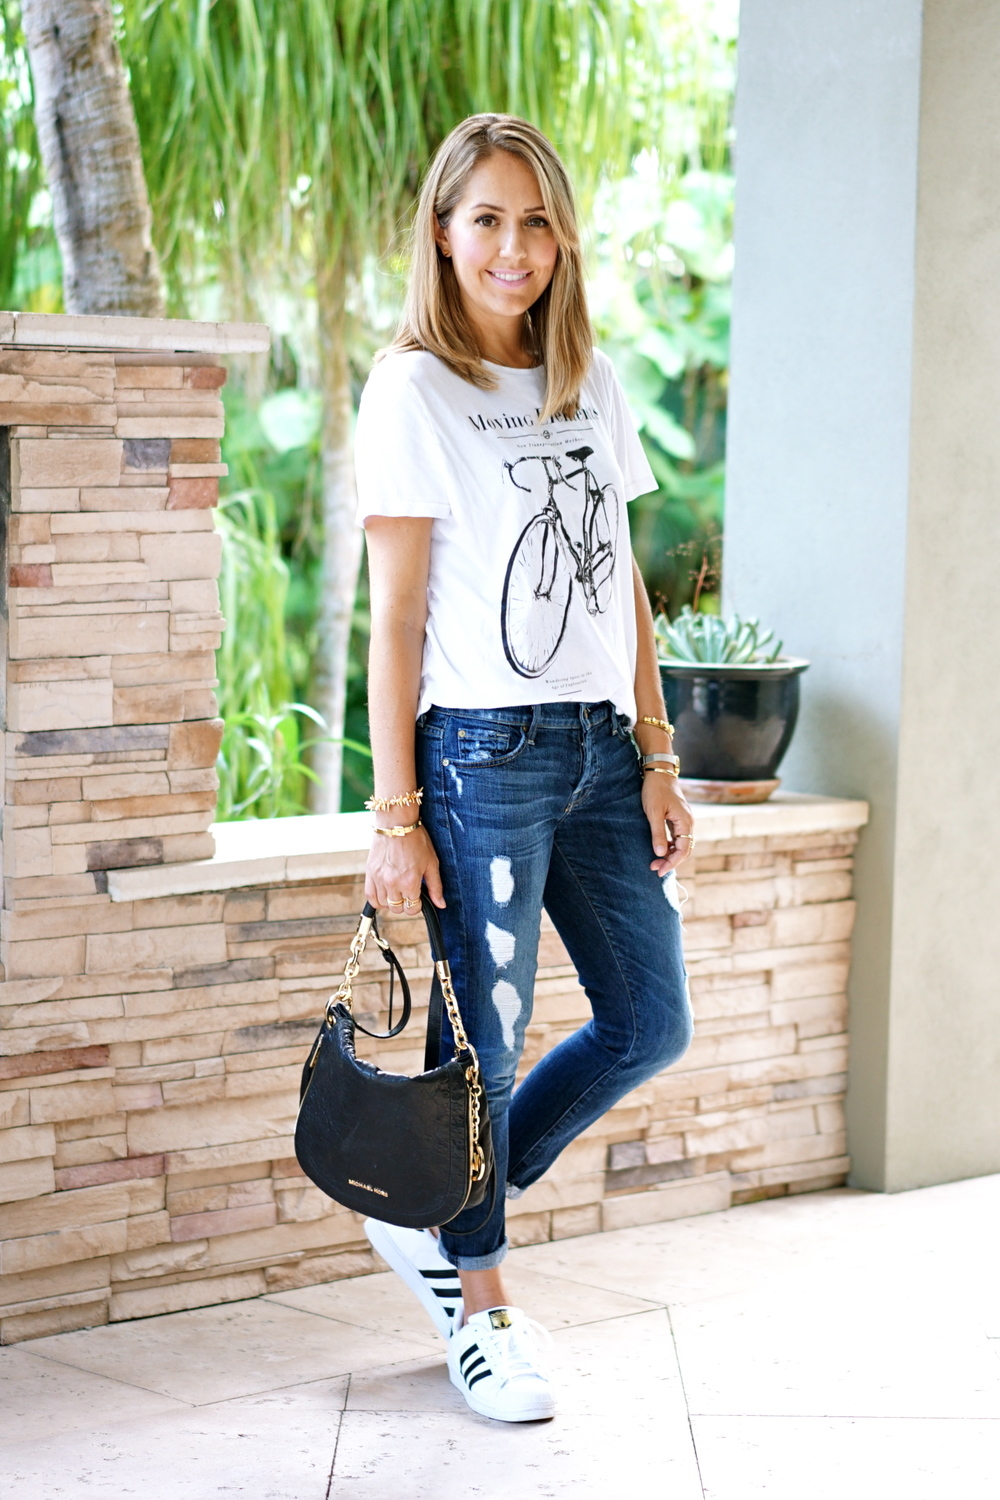 Graphic tee, distressed jeans, Adidas sneakers